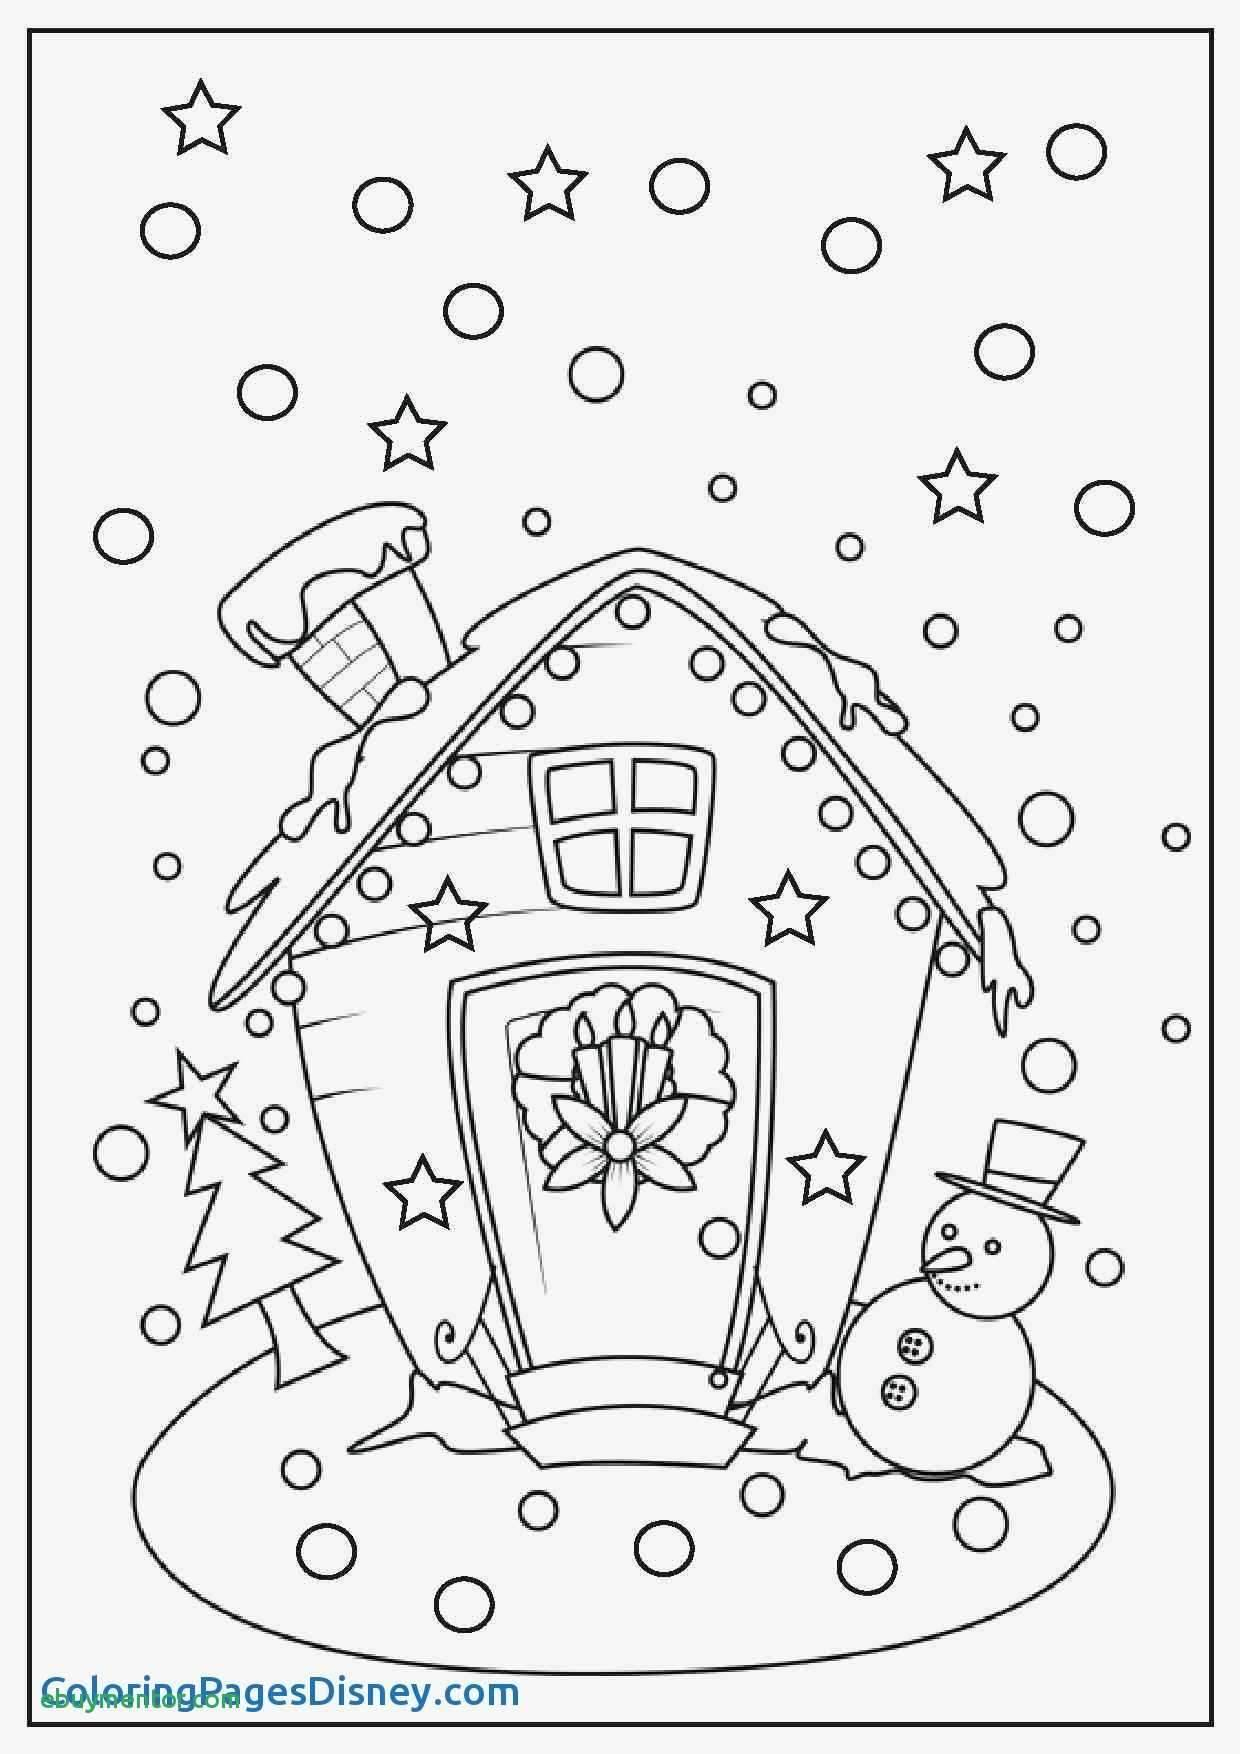 coloring pages christmas ornaments Collection-Christmas Tree Beautiful Christmas Tree Cut Out Coloring Pages Cool Coloring Printables 0d 19-b